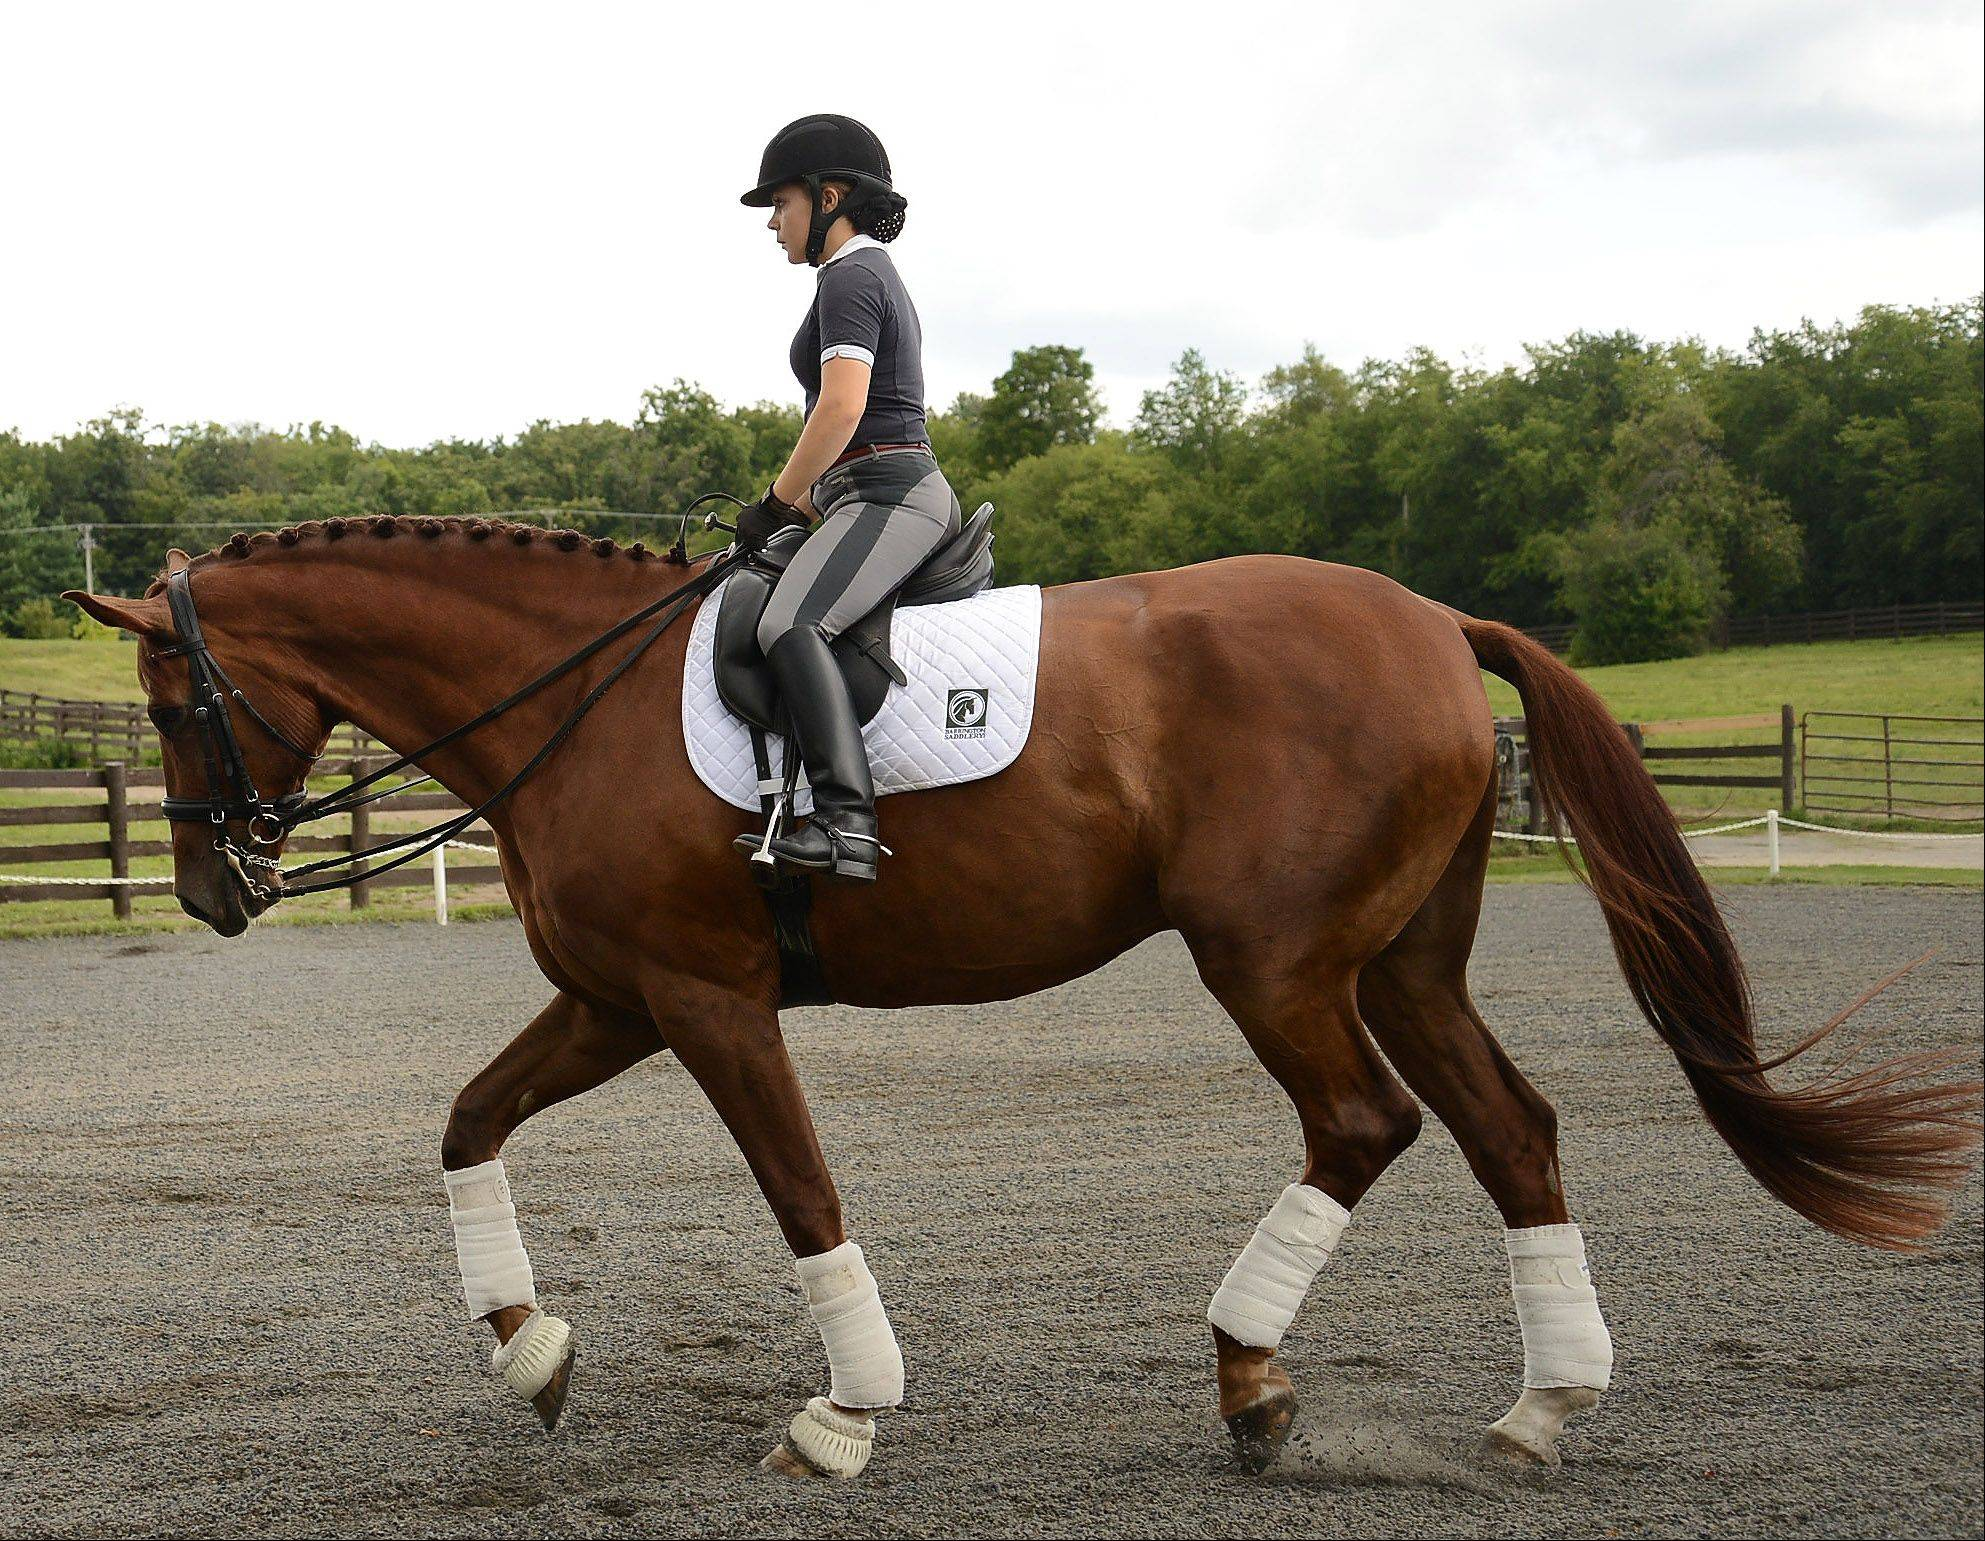 Barrington High School senior Rosie Julian-Simoes and horse Proteus train at the Flying Dutchman Farm in Barrington Hills. She's among the country's top-ranked dressage competitors in her division.